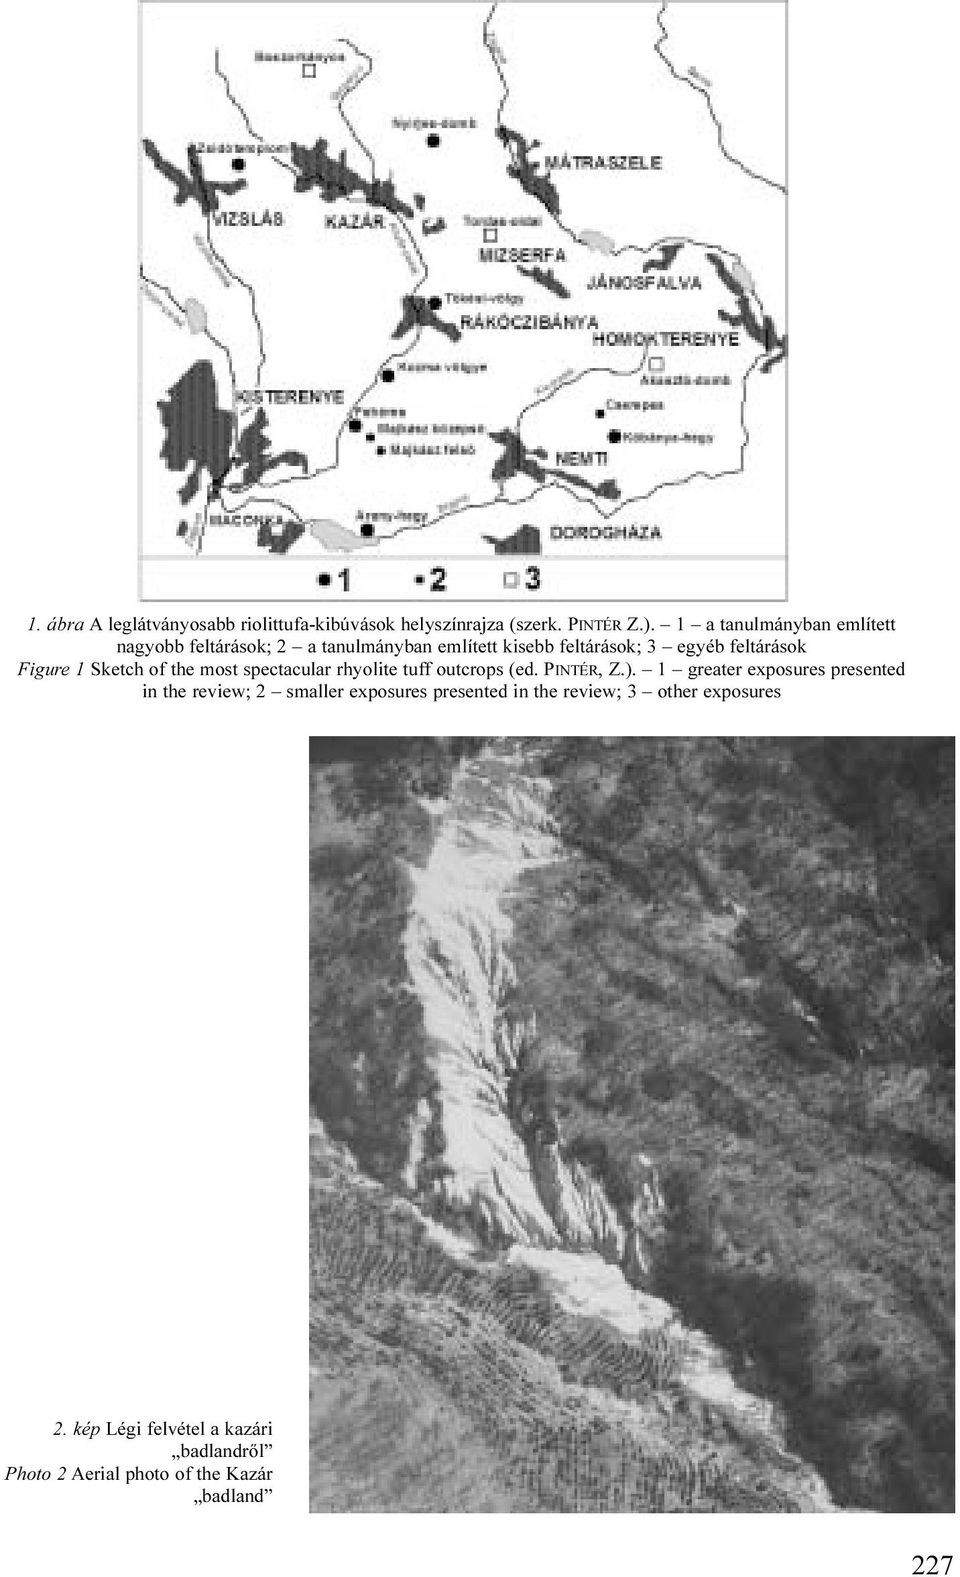 1 Sketch of the most spectacular rhyolite tuff outcrops (ed. PINTÉR, Z.).